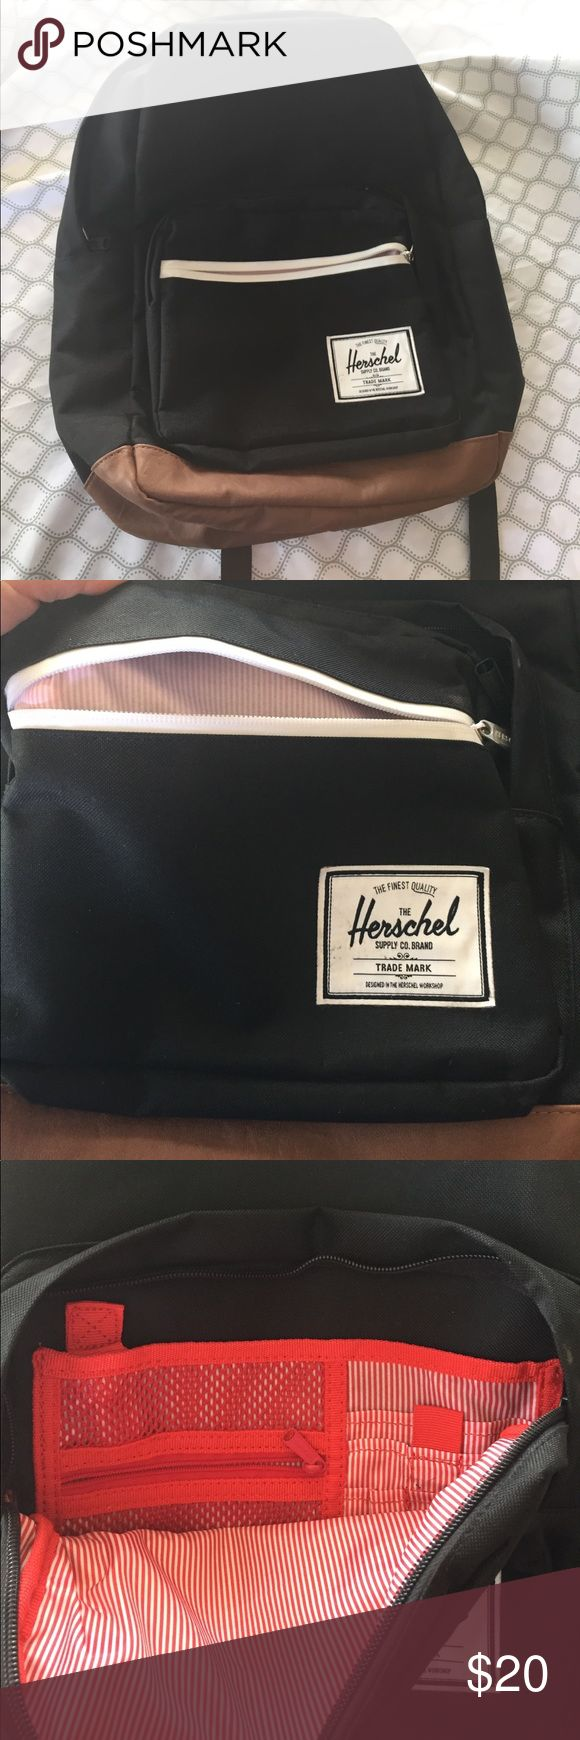 Herschel Supply Co. Backpack Black with brown leather, has a soft lined pocket inside for laptop, it does have that little stain, but overall the rest is in very good condition Herschel Supply Company Bags Backpacks